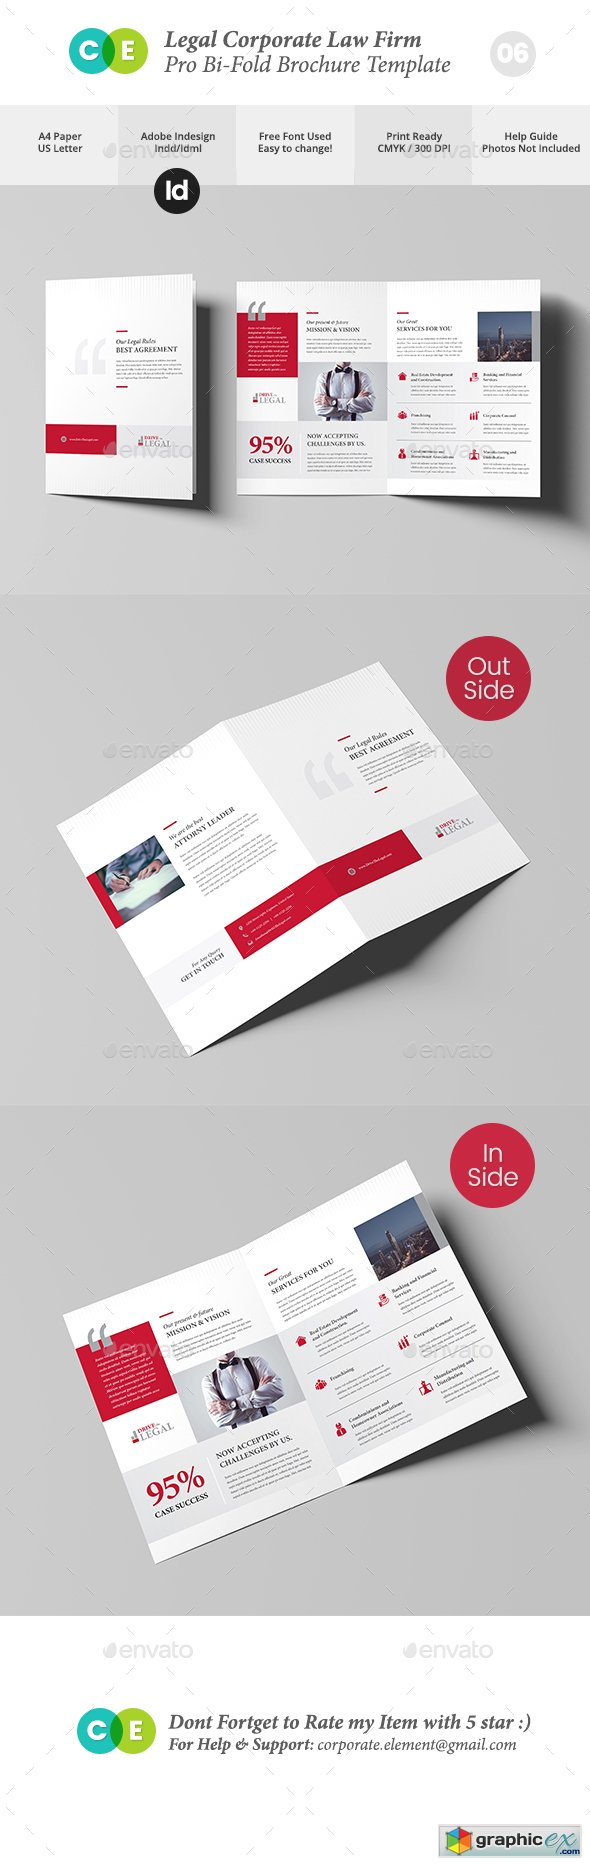 Legal Corporate Law Firm Business Bi-Fold Brochure V06